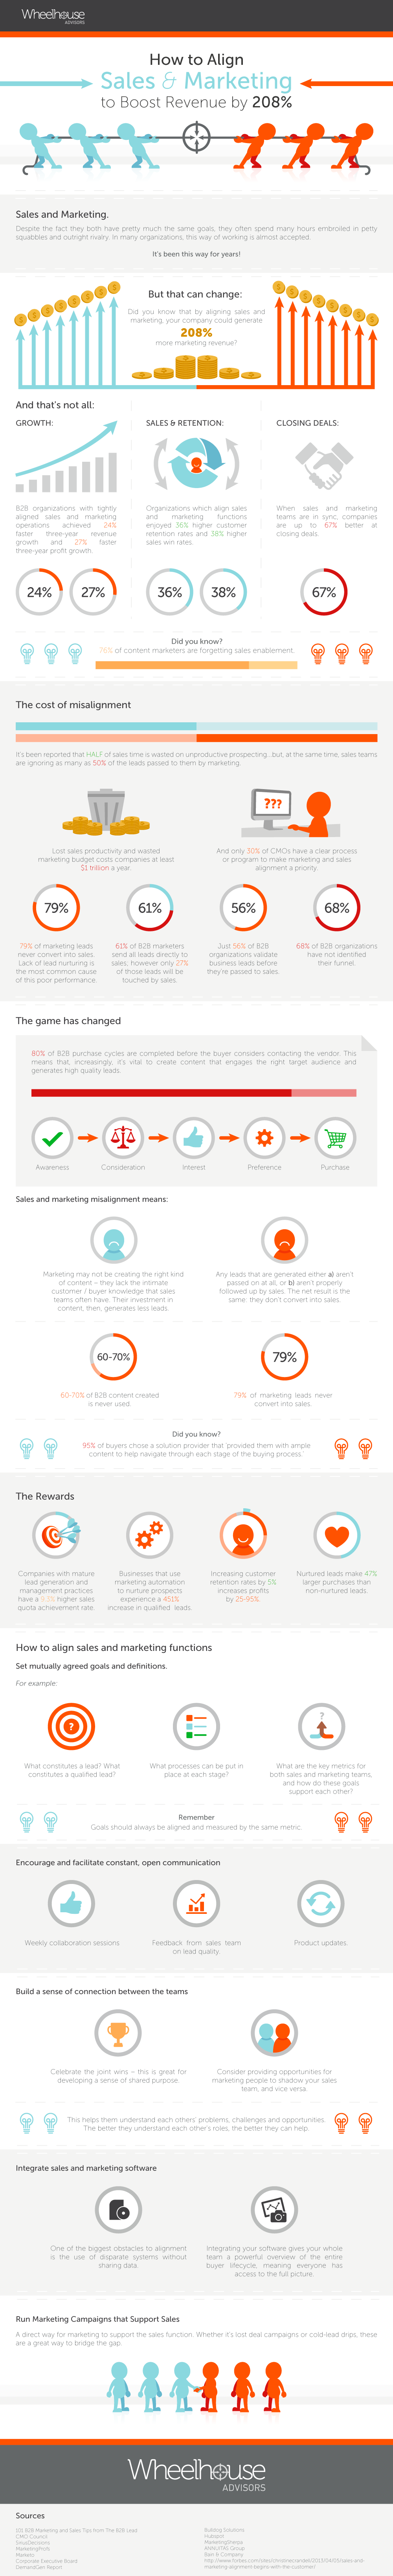 How Sales & Marketing Alignment Can Boost Revenue [Infographic]